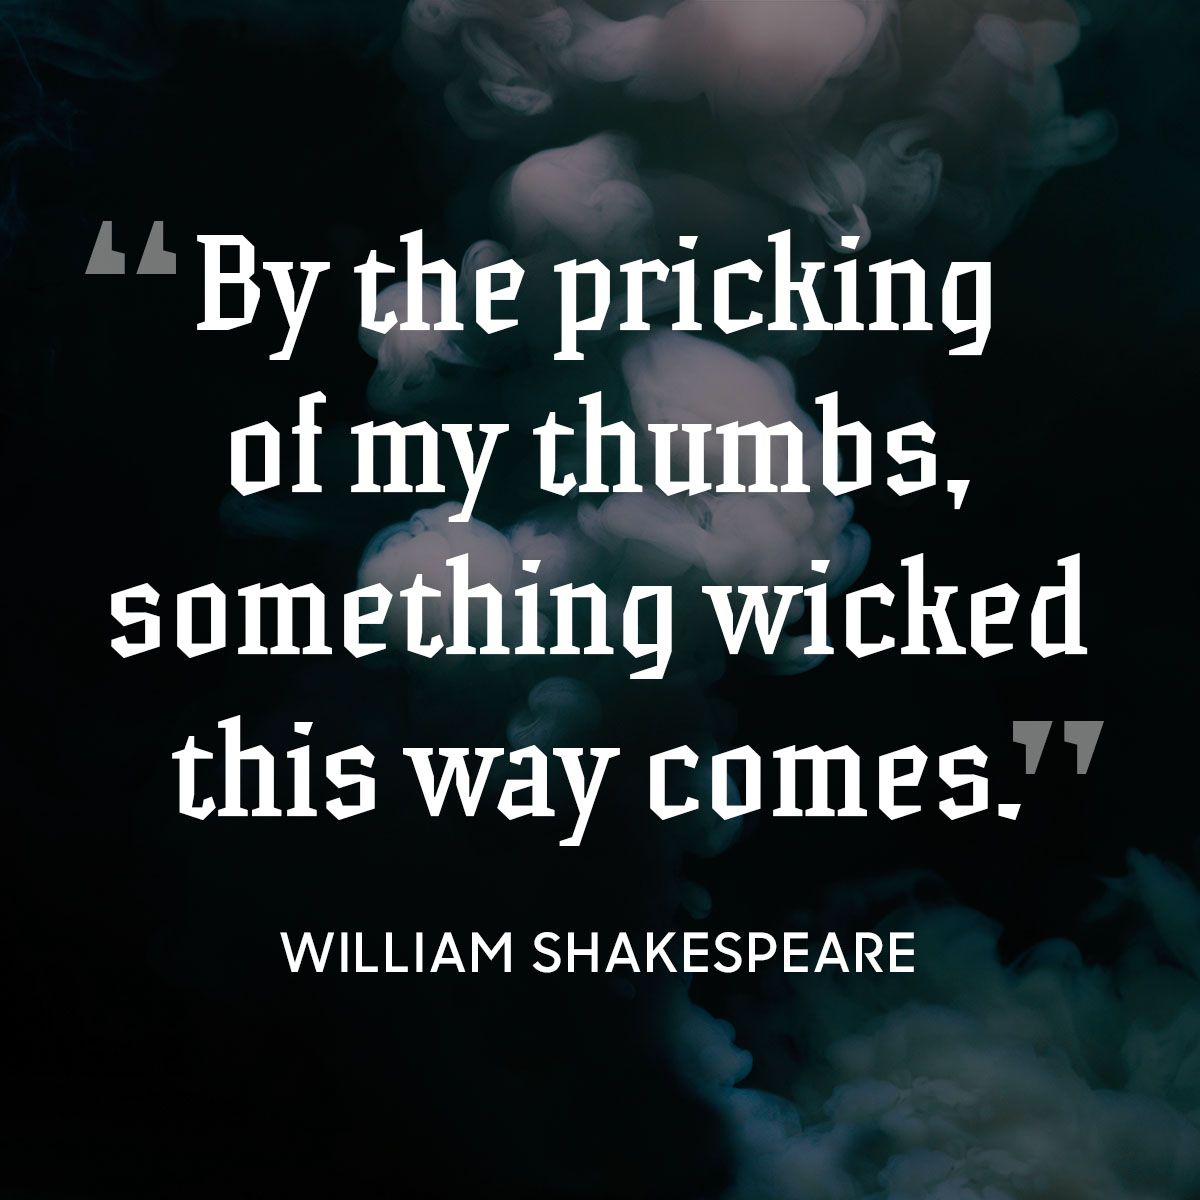 Get in the Halloween Spirit With These Scary Quotes From Edgar Allan Poe, Stephen King and More